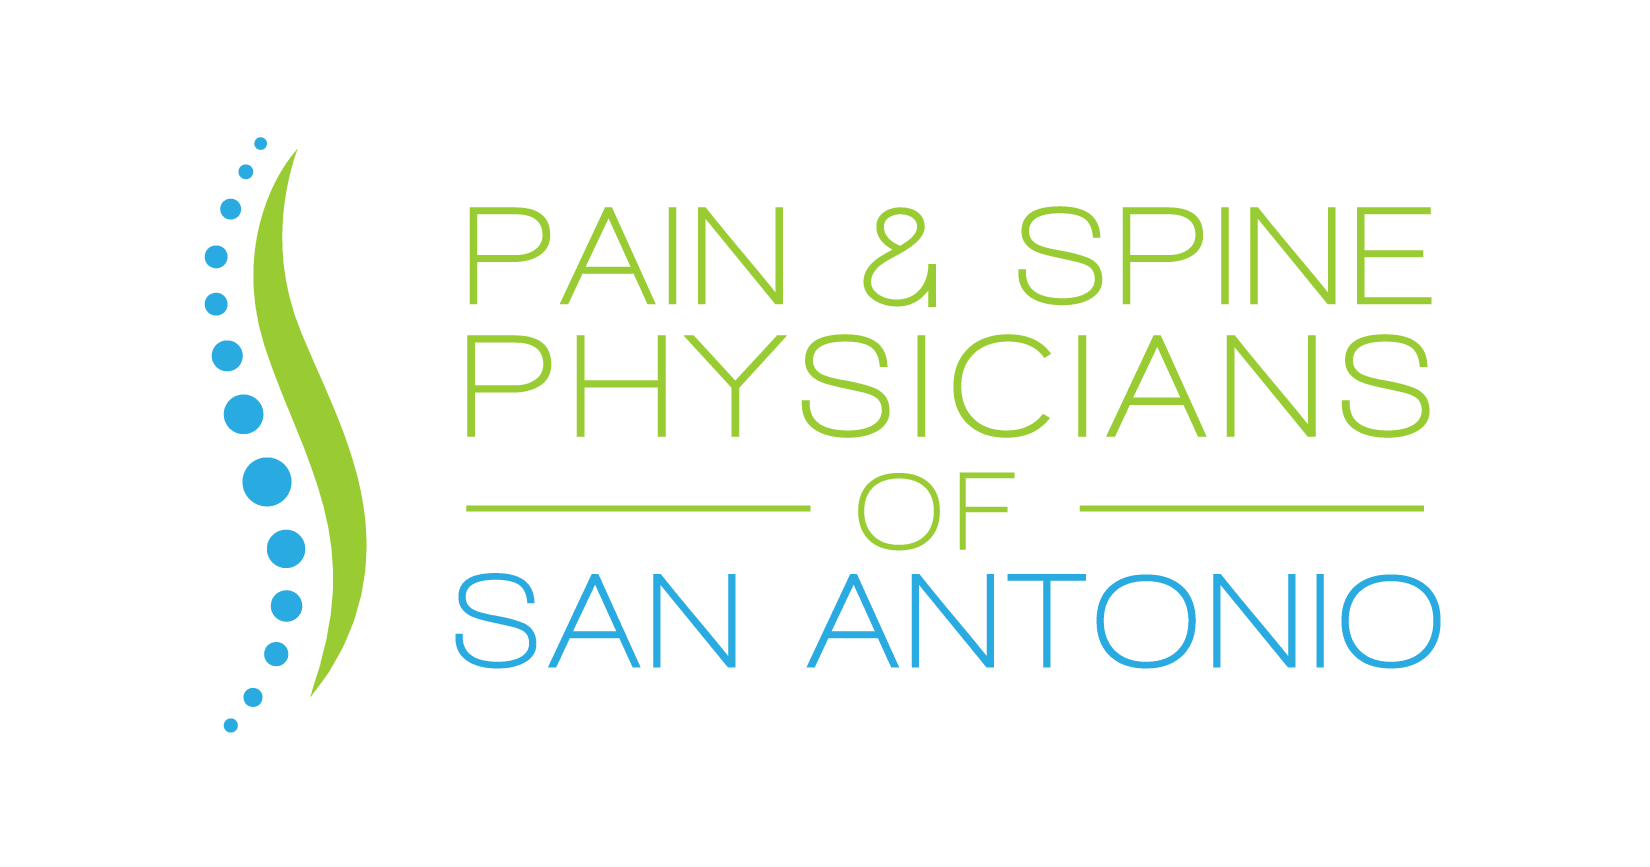 pain and spine physicians of san antonio